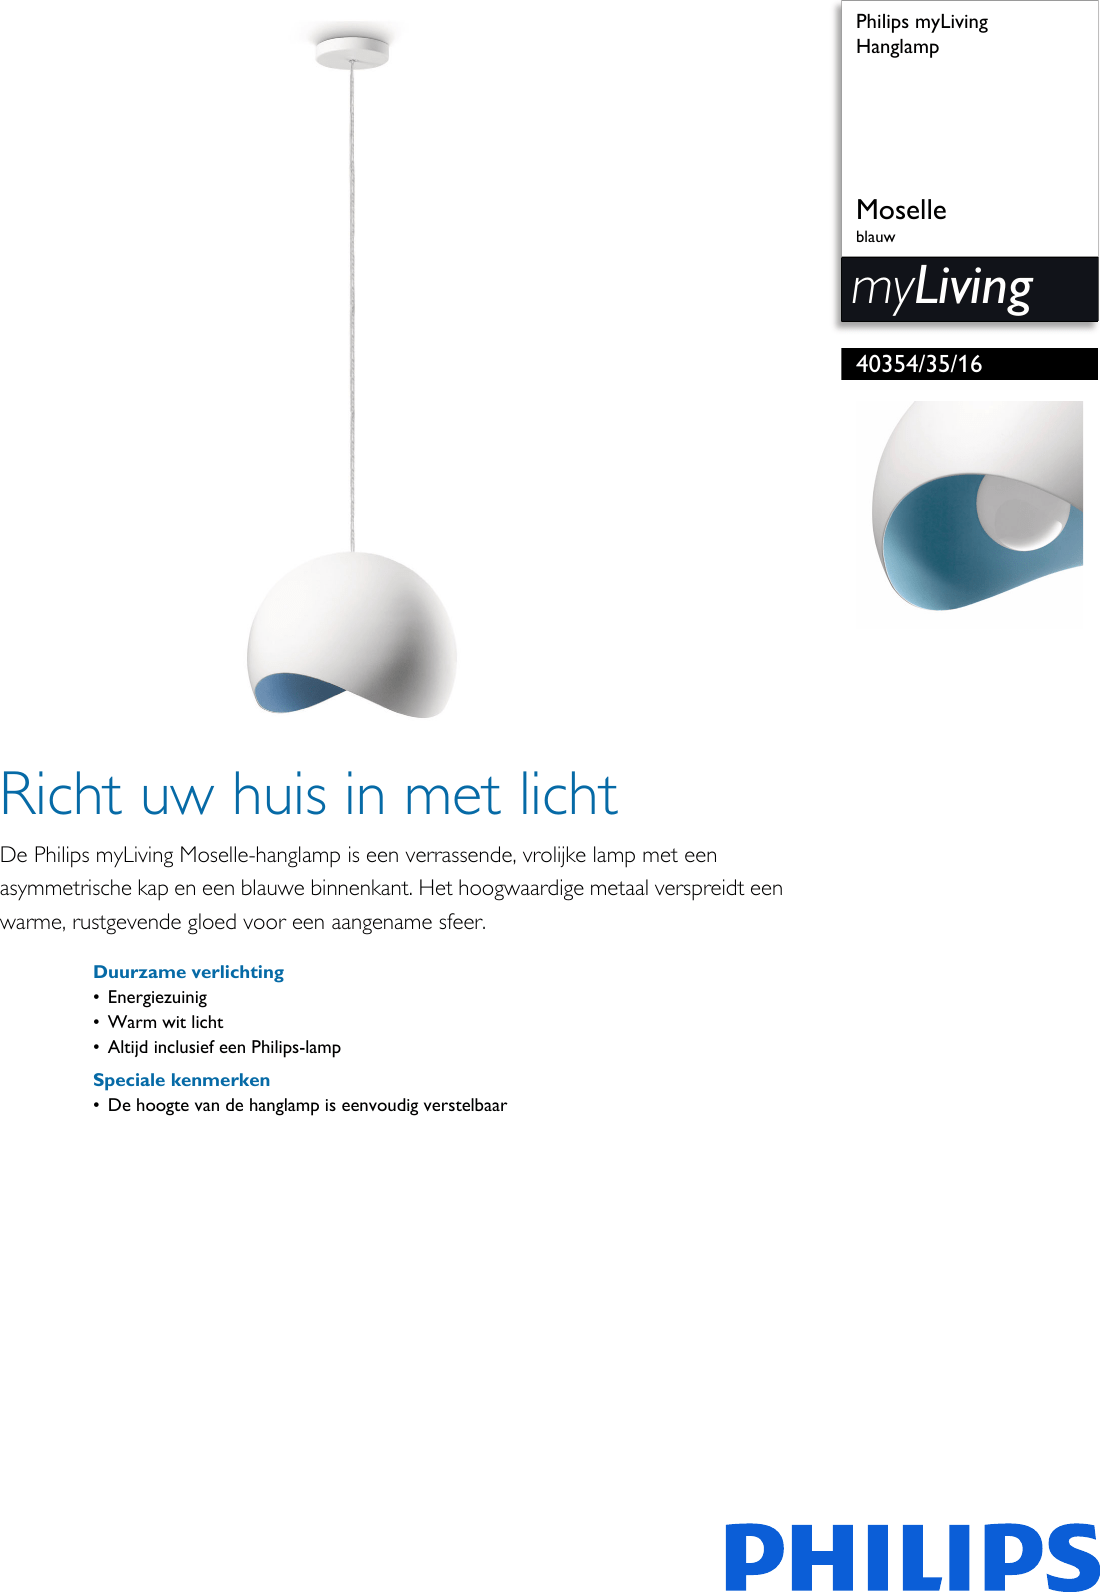 Tl Verlichting Wiki Philips 40354 35 16 403543516 Hanglamp User Manual Brochure Pss Nldnl